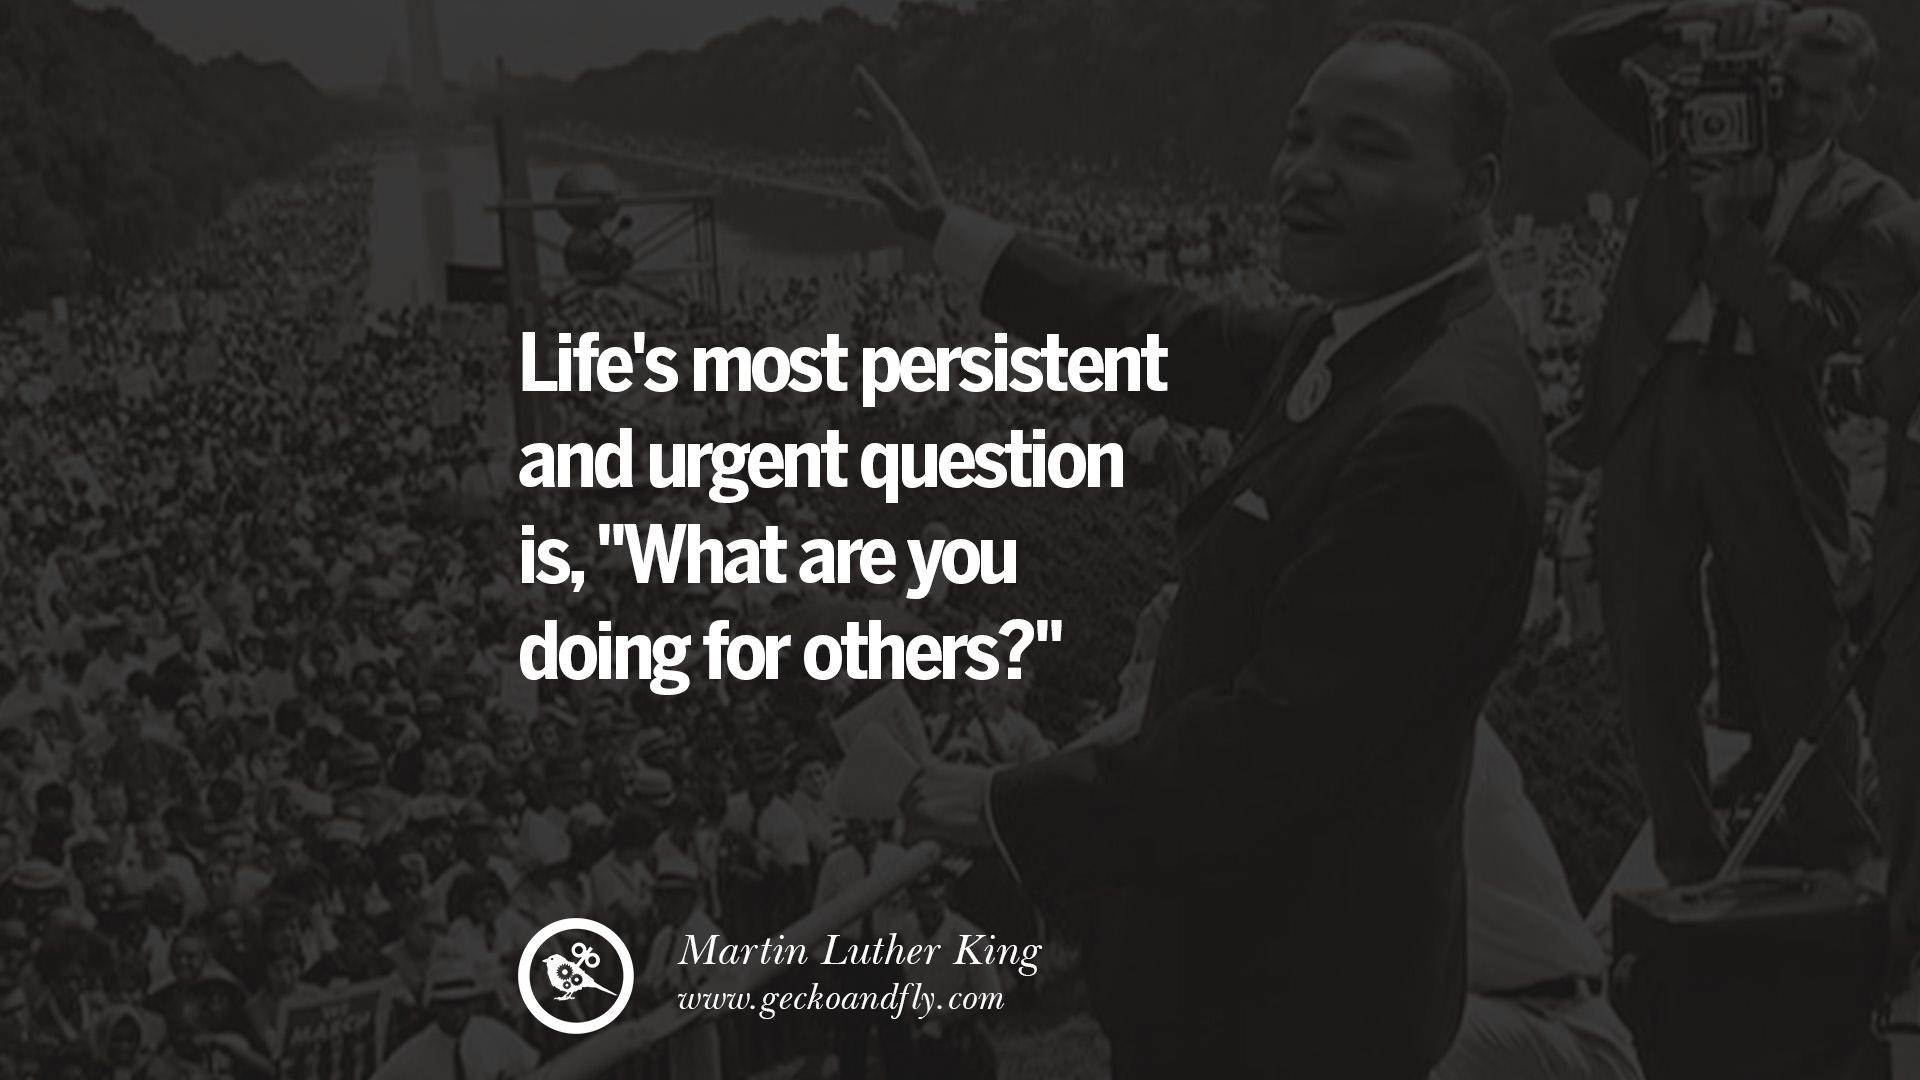 30 Powerful Martin Luther King Jr Quotes On Equality Rights Black